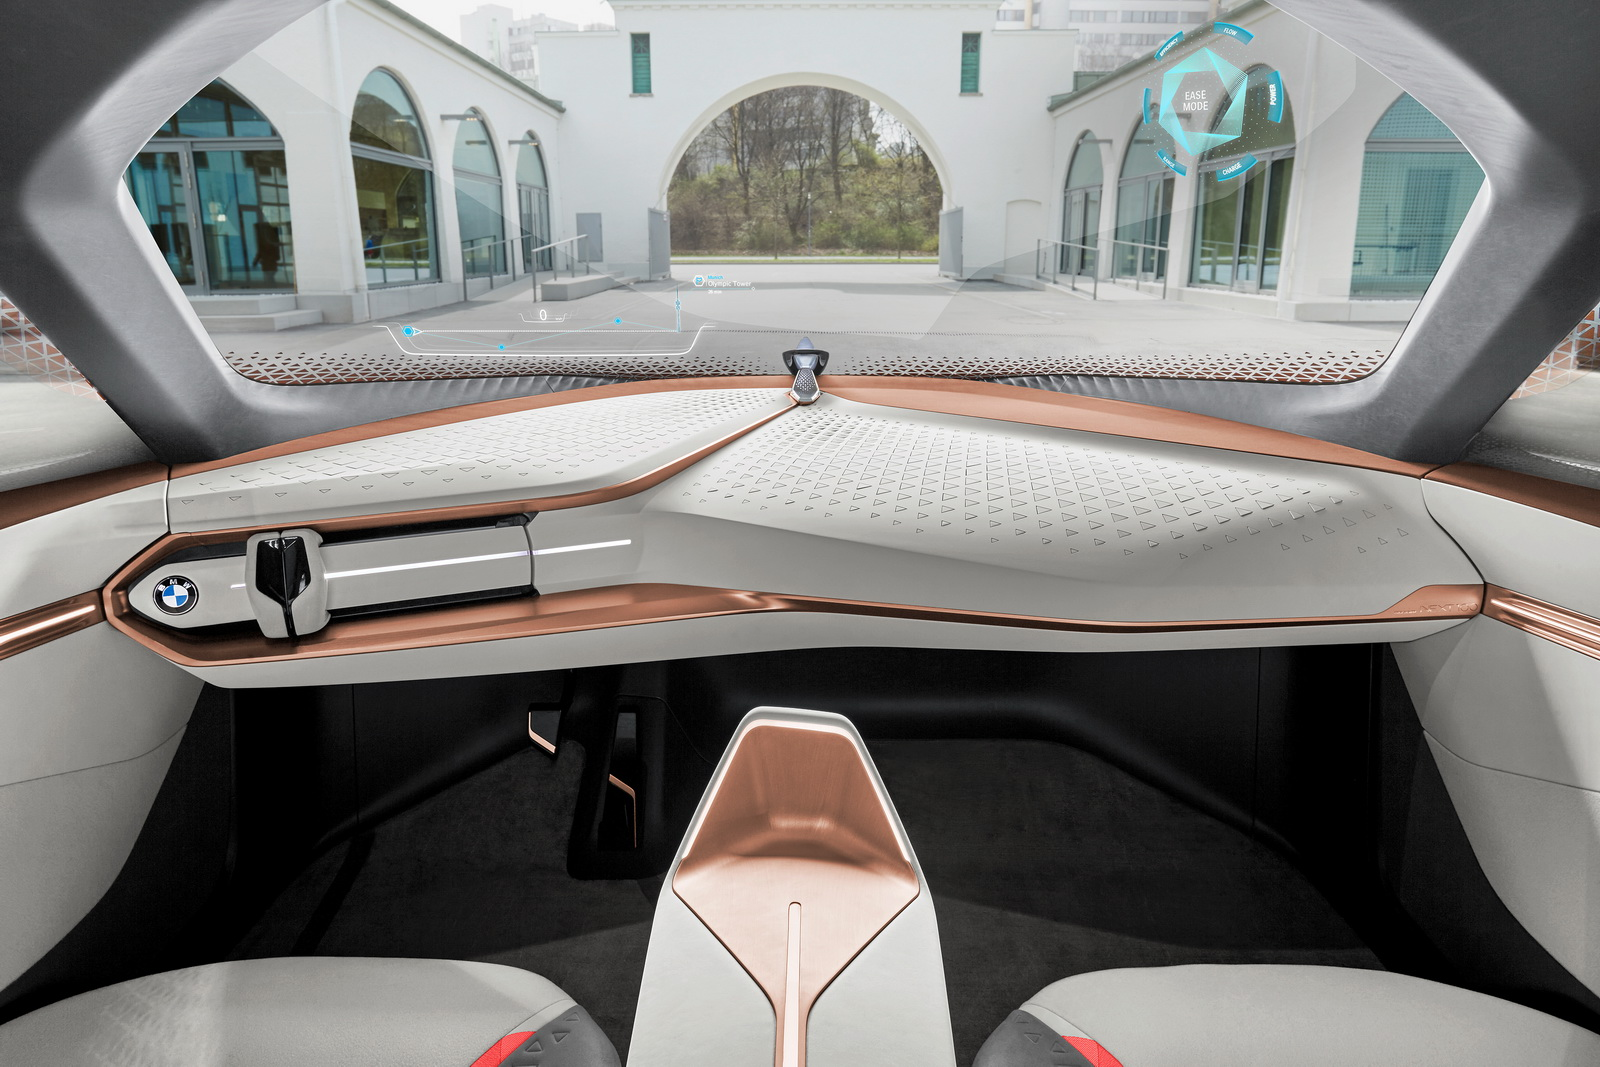 bmw vision next 100 detailed in new gallery 34 pics. Black Bedroom Furniture Sets. Home Design Ideas